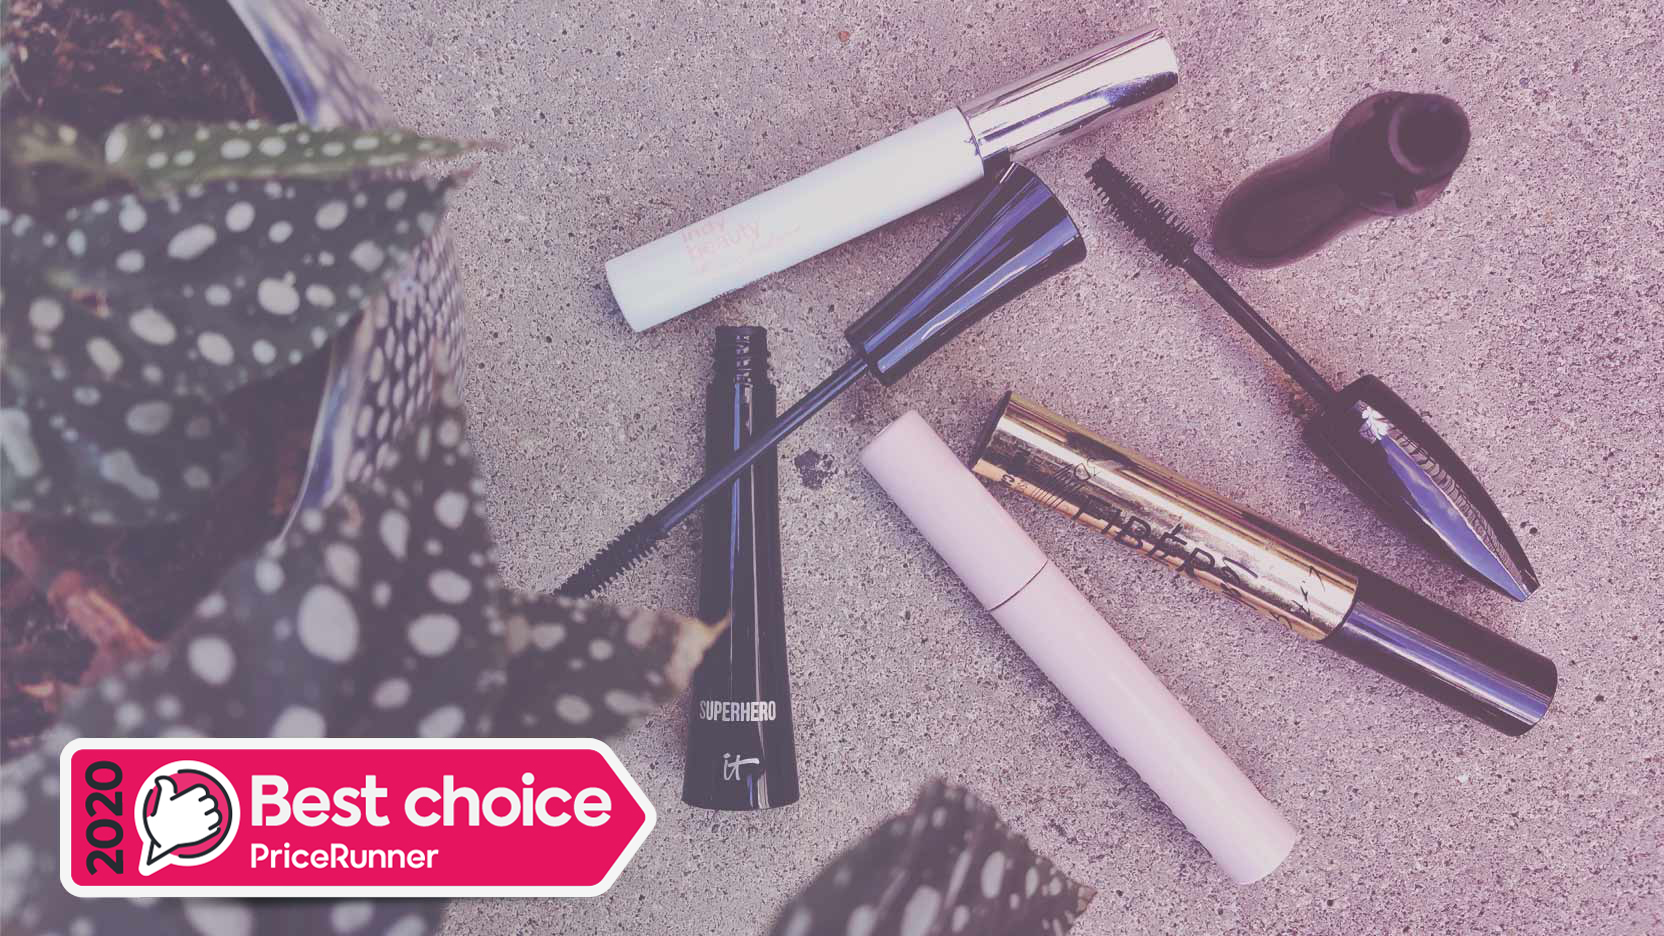 Top 24 Best Mascaras Of 2020 Reviewed Ranked